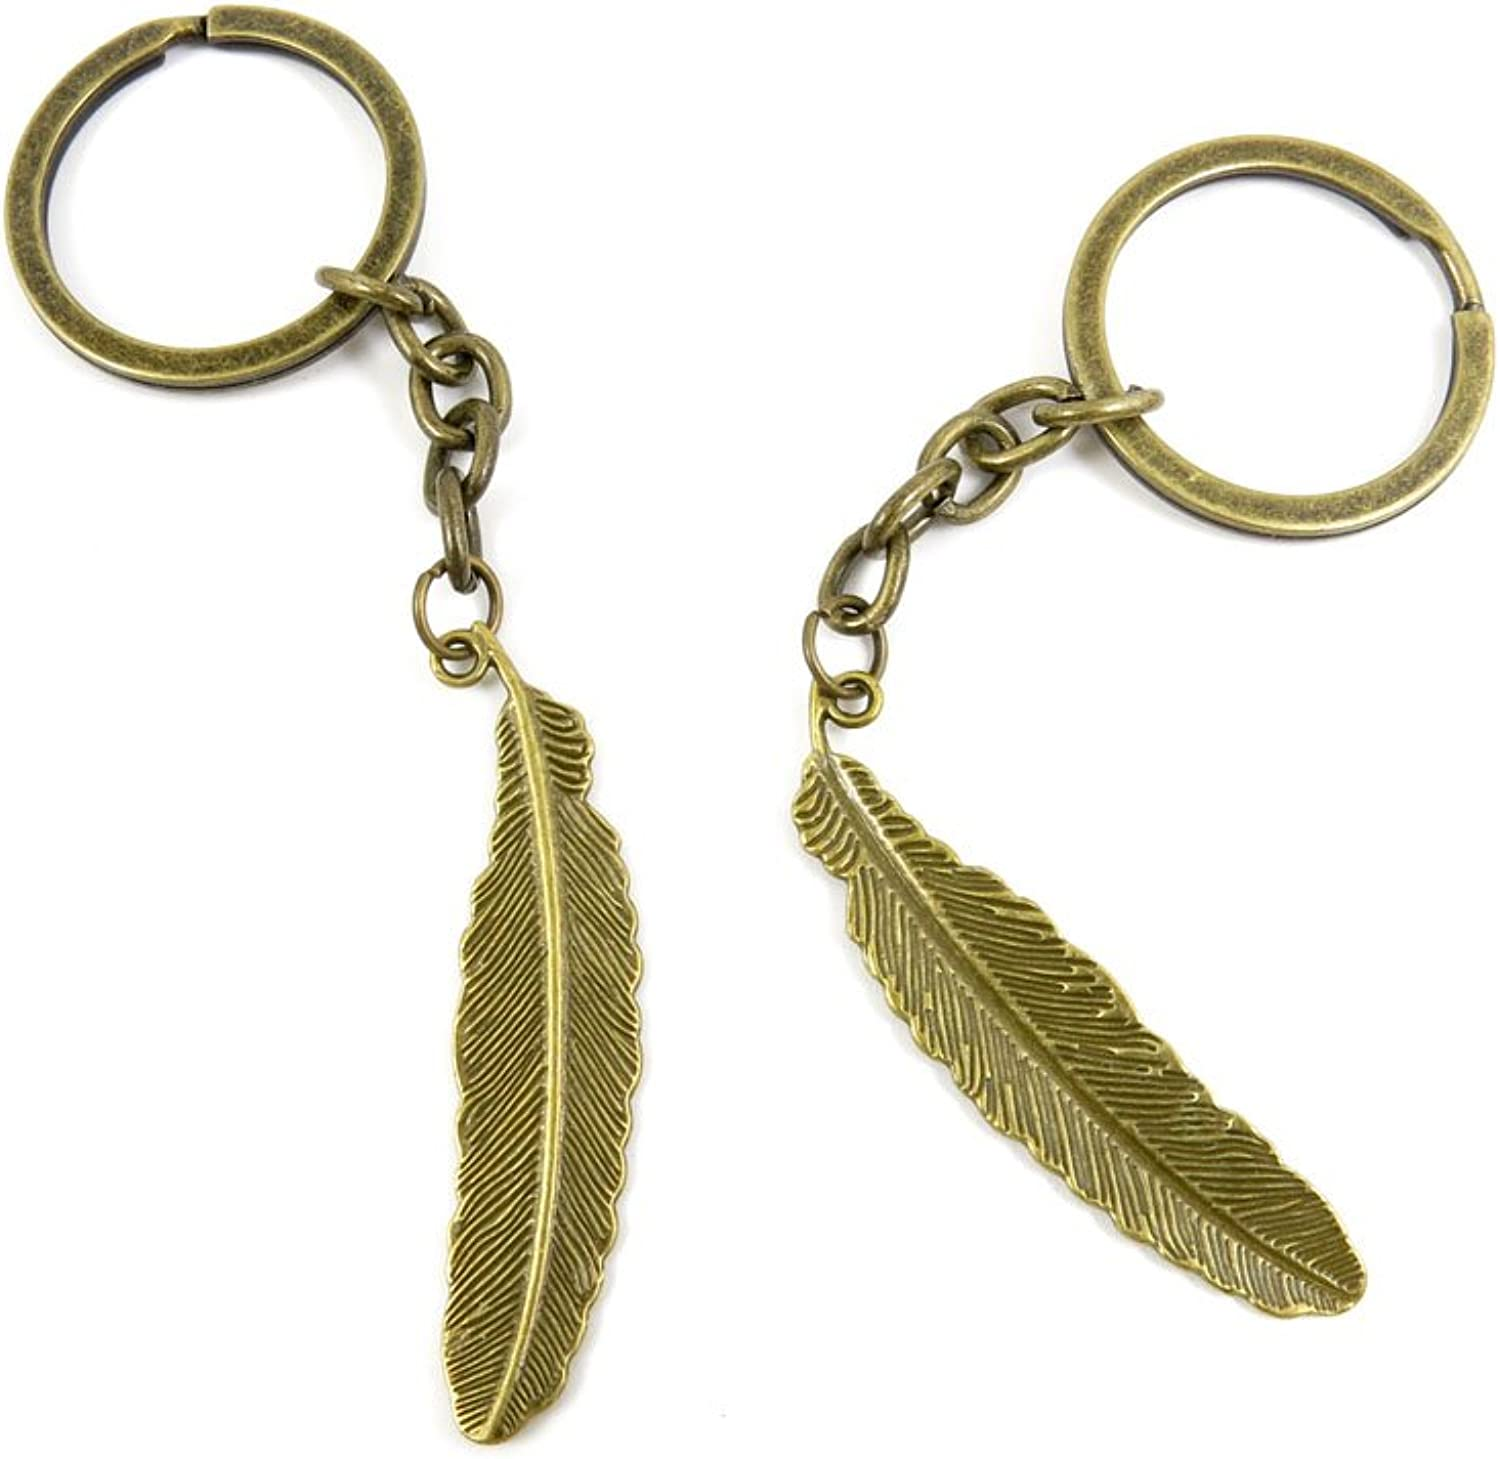 140 Pieces Fashion Jewelry Keyring Keychain Door Car Key Tag Ring Chain Supplier Supply Wholesale Bulk Lots V3GK2 Feather